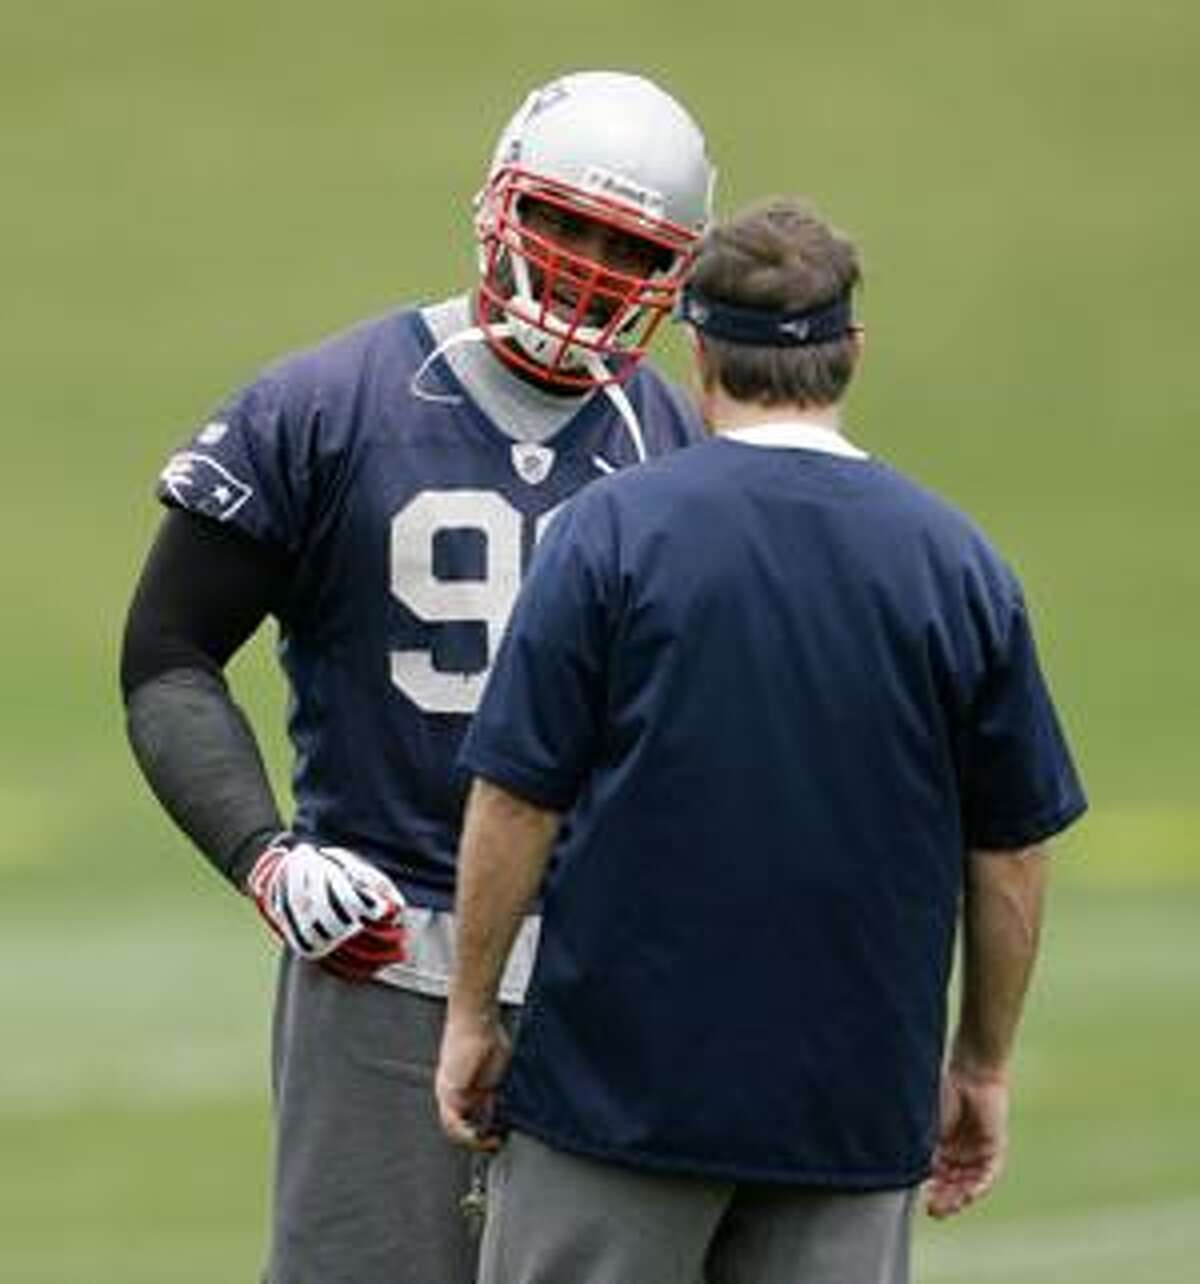 FILE - This june 2, 2009, file photo shows New England Patriots linebacker Adalius Thomas (96) talking with New England Patriots head coach Bill Belichick during practice at the team's football facility in Foxborough, Mass. The Patriots on Monday, April 26, 2010, released former Pro Bowl linebacker Adalius Thomas, who joined the team as a high-profile free agent in 2007, but fell into disfavor with coach Bill Belichick last season. (AP Photo/Stephan Savoia, File)